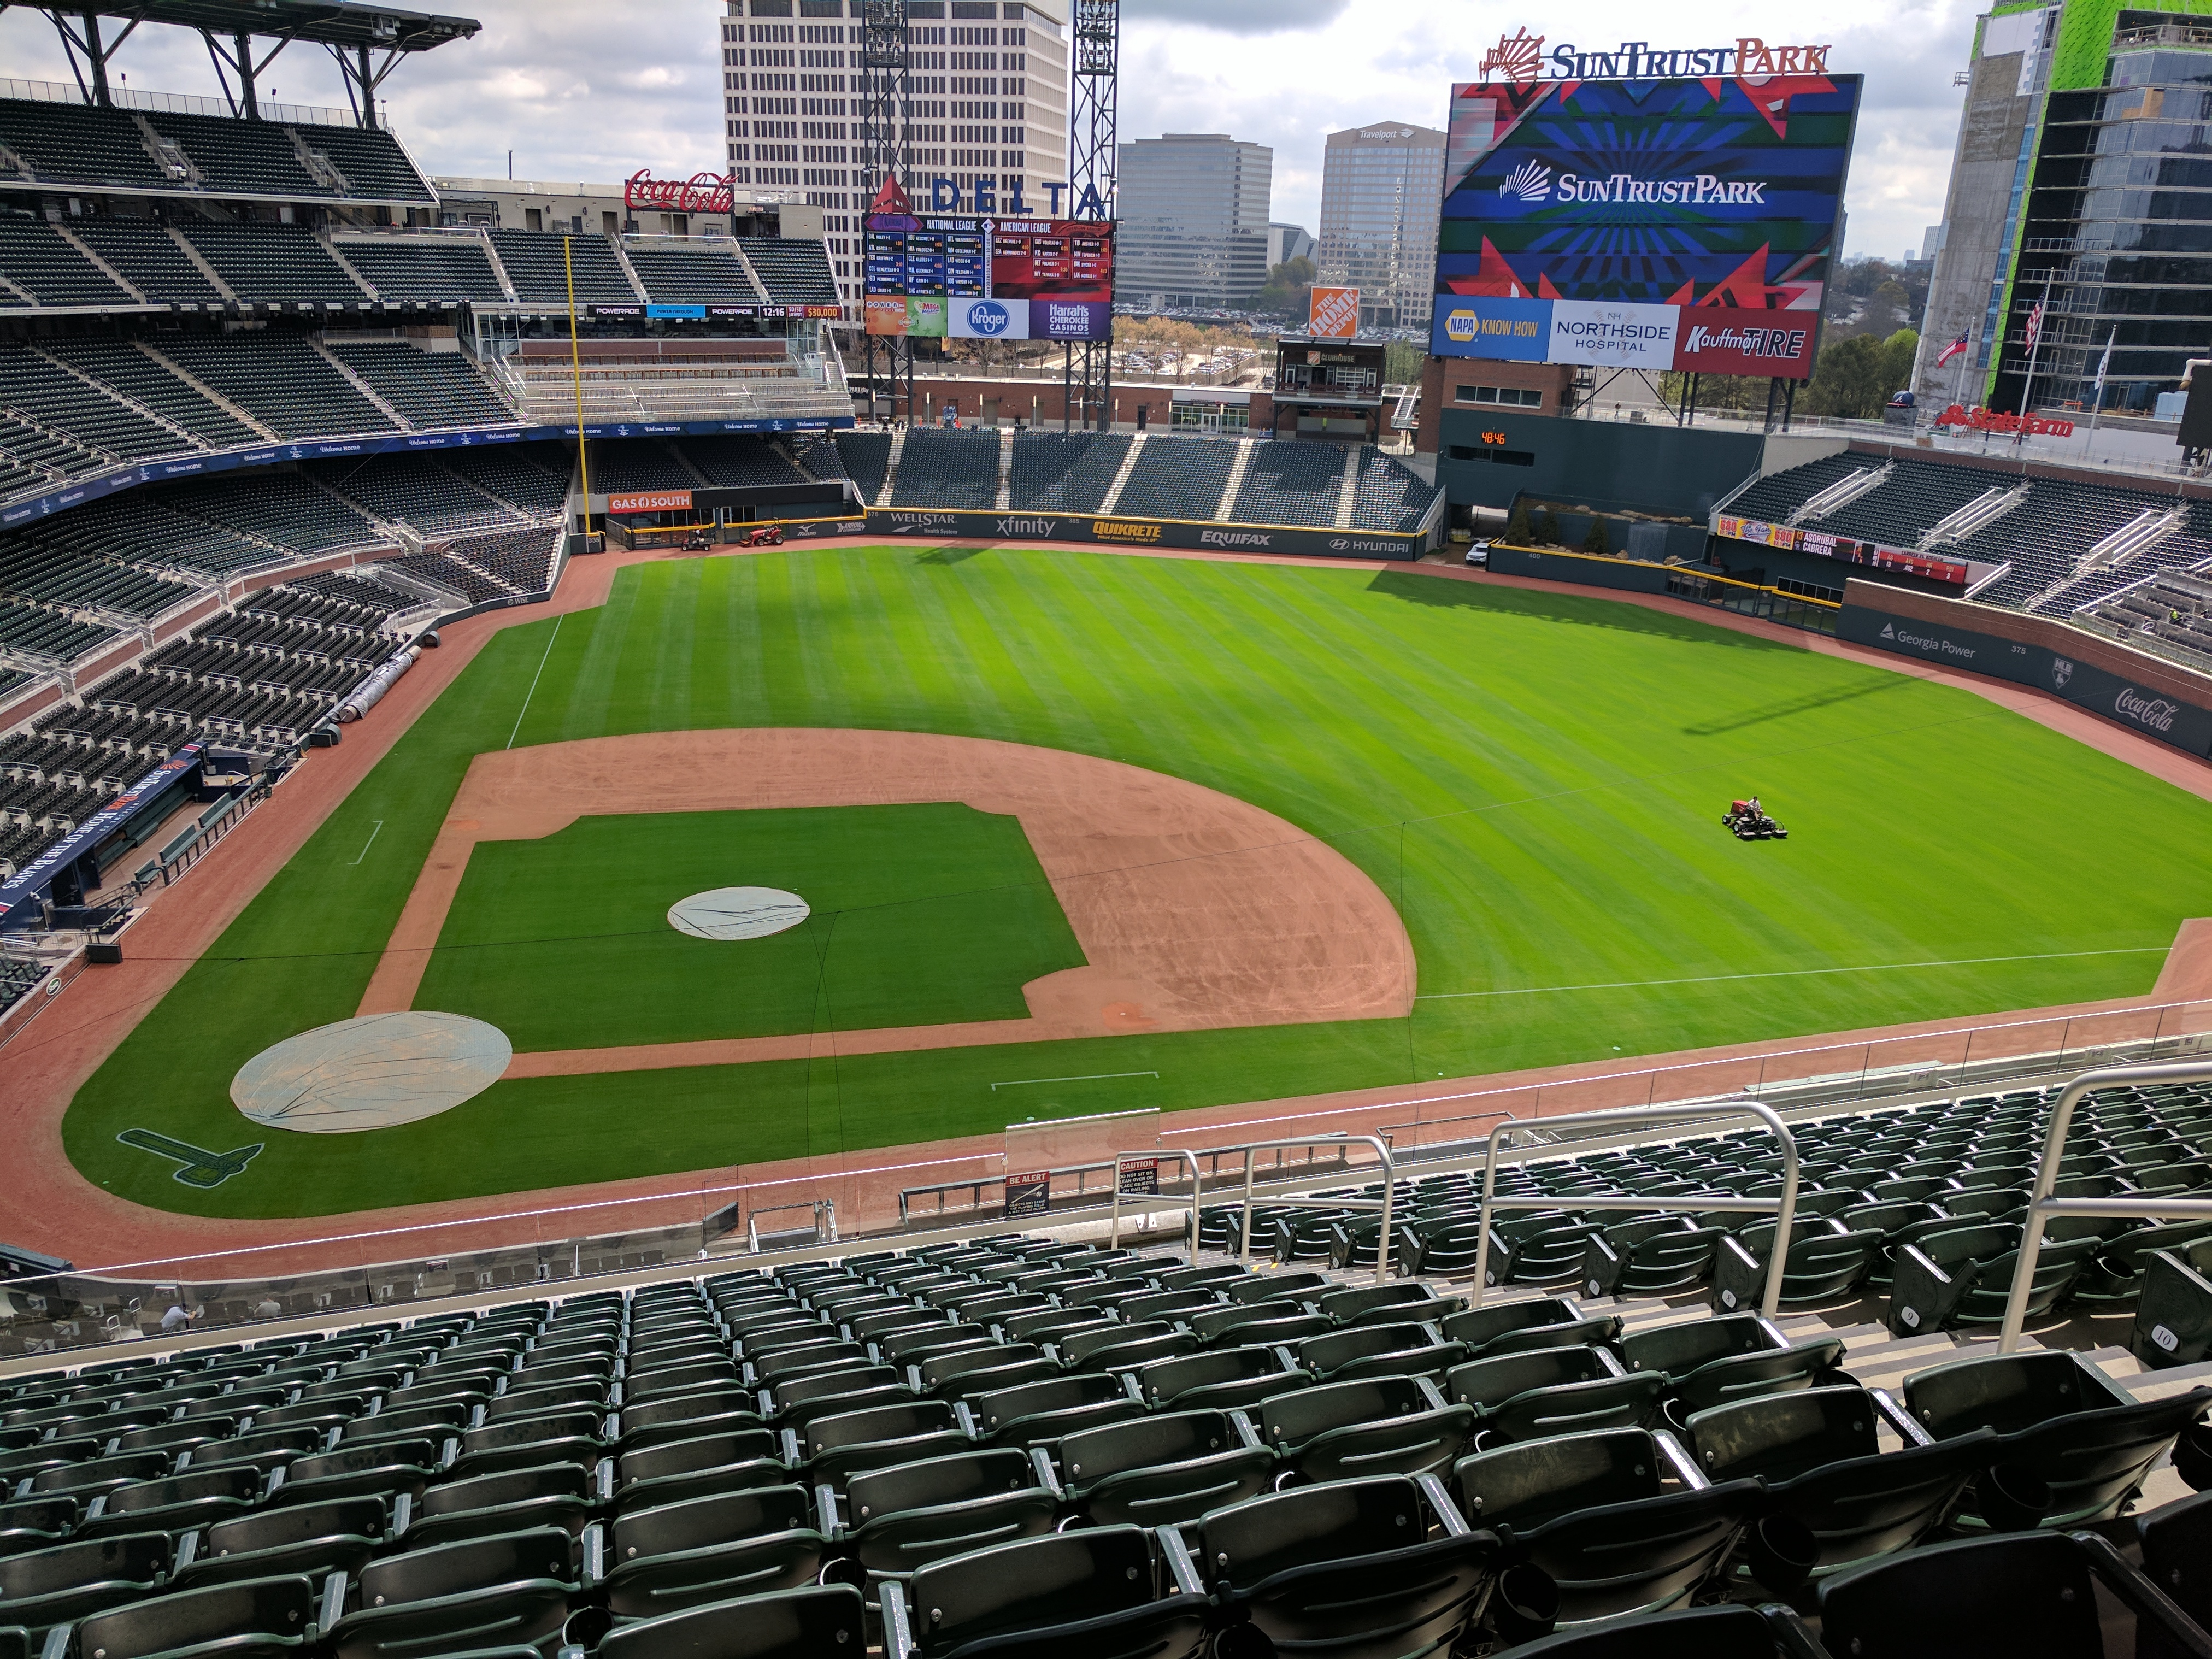 As The Braves Prepare To Move Into Their New Home In Cobb County They Do So With A Revamped Roster Stocked Veterans Suntrust Park May Not Play Host